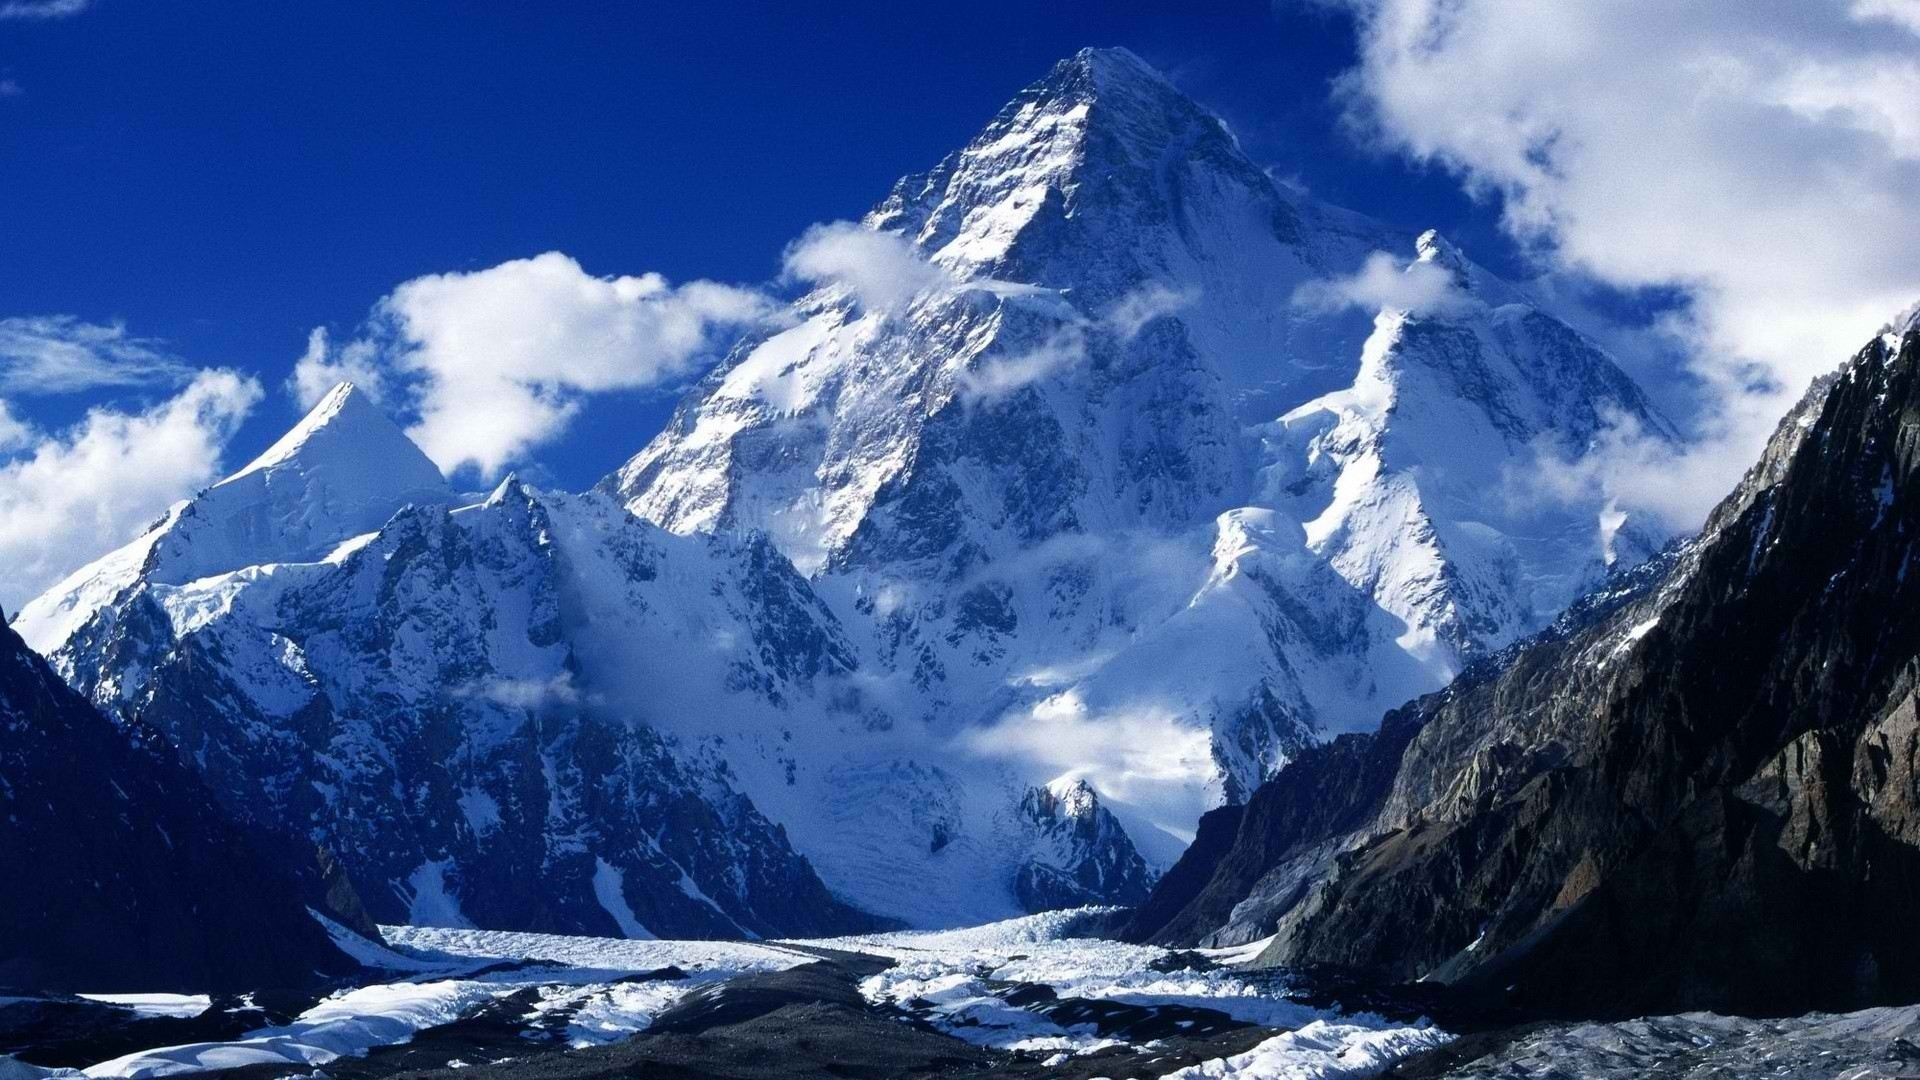 Res: 1920x1080, Awesome pakistan nature wallpapers hd Collection - hd wallpapers of Pakistan